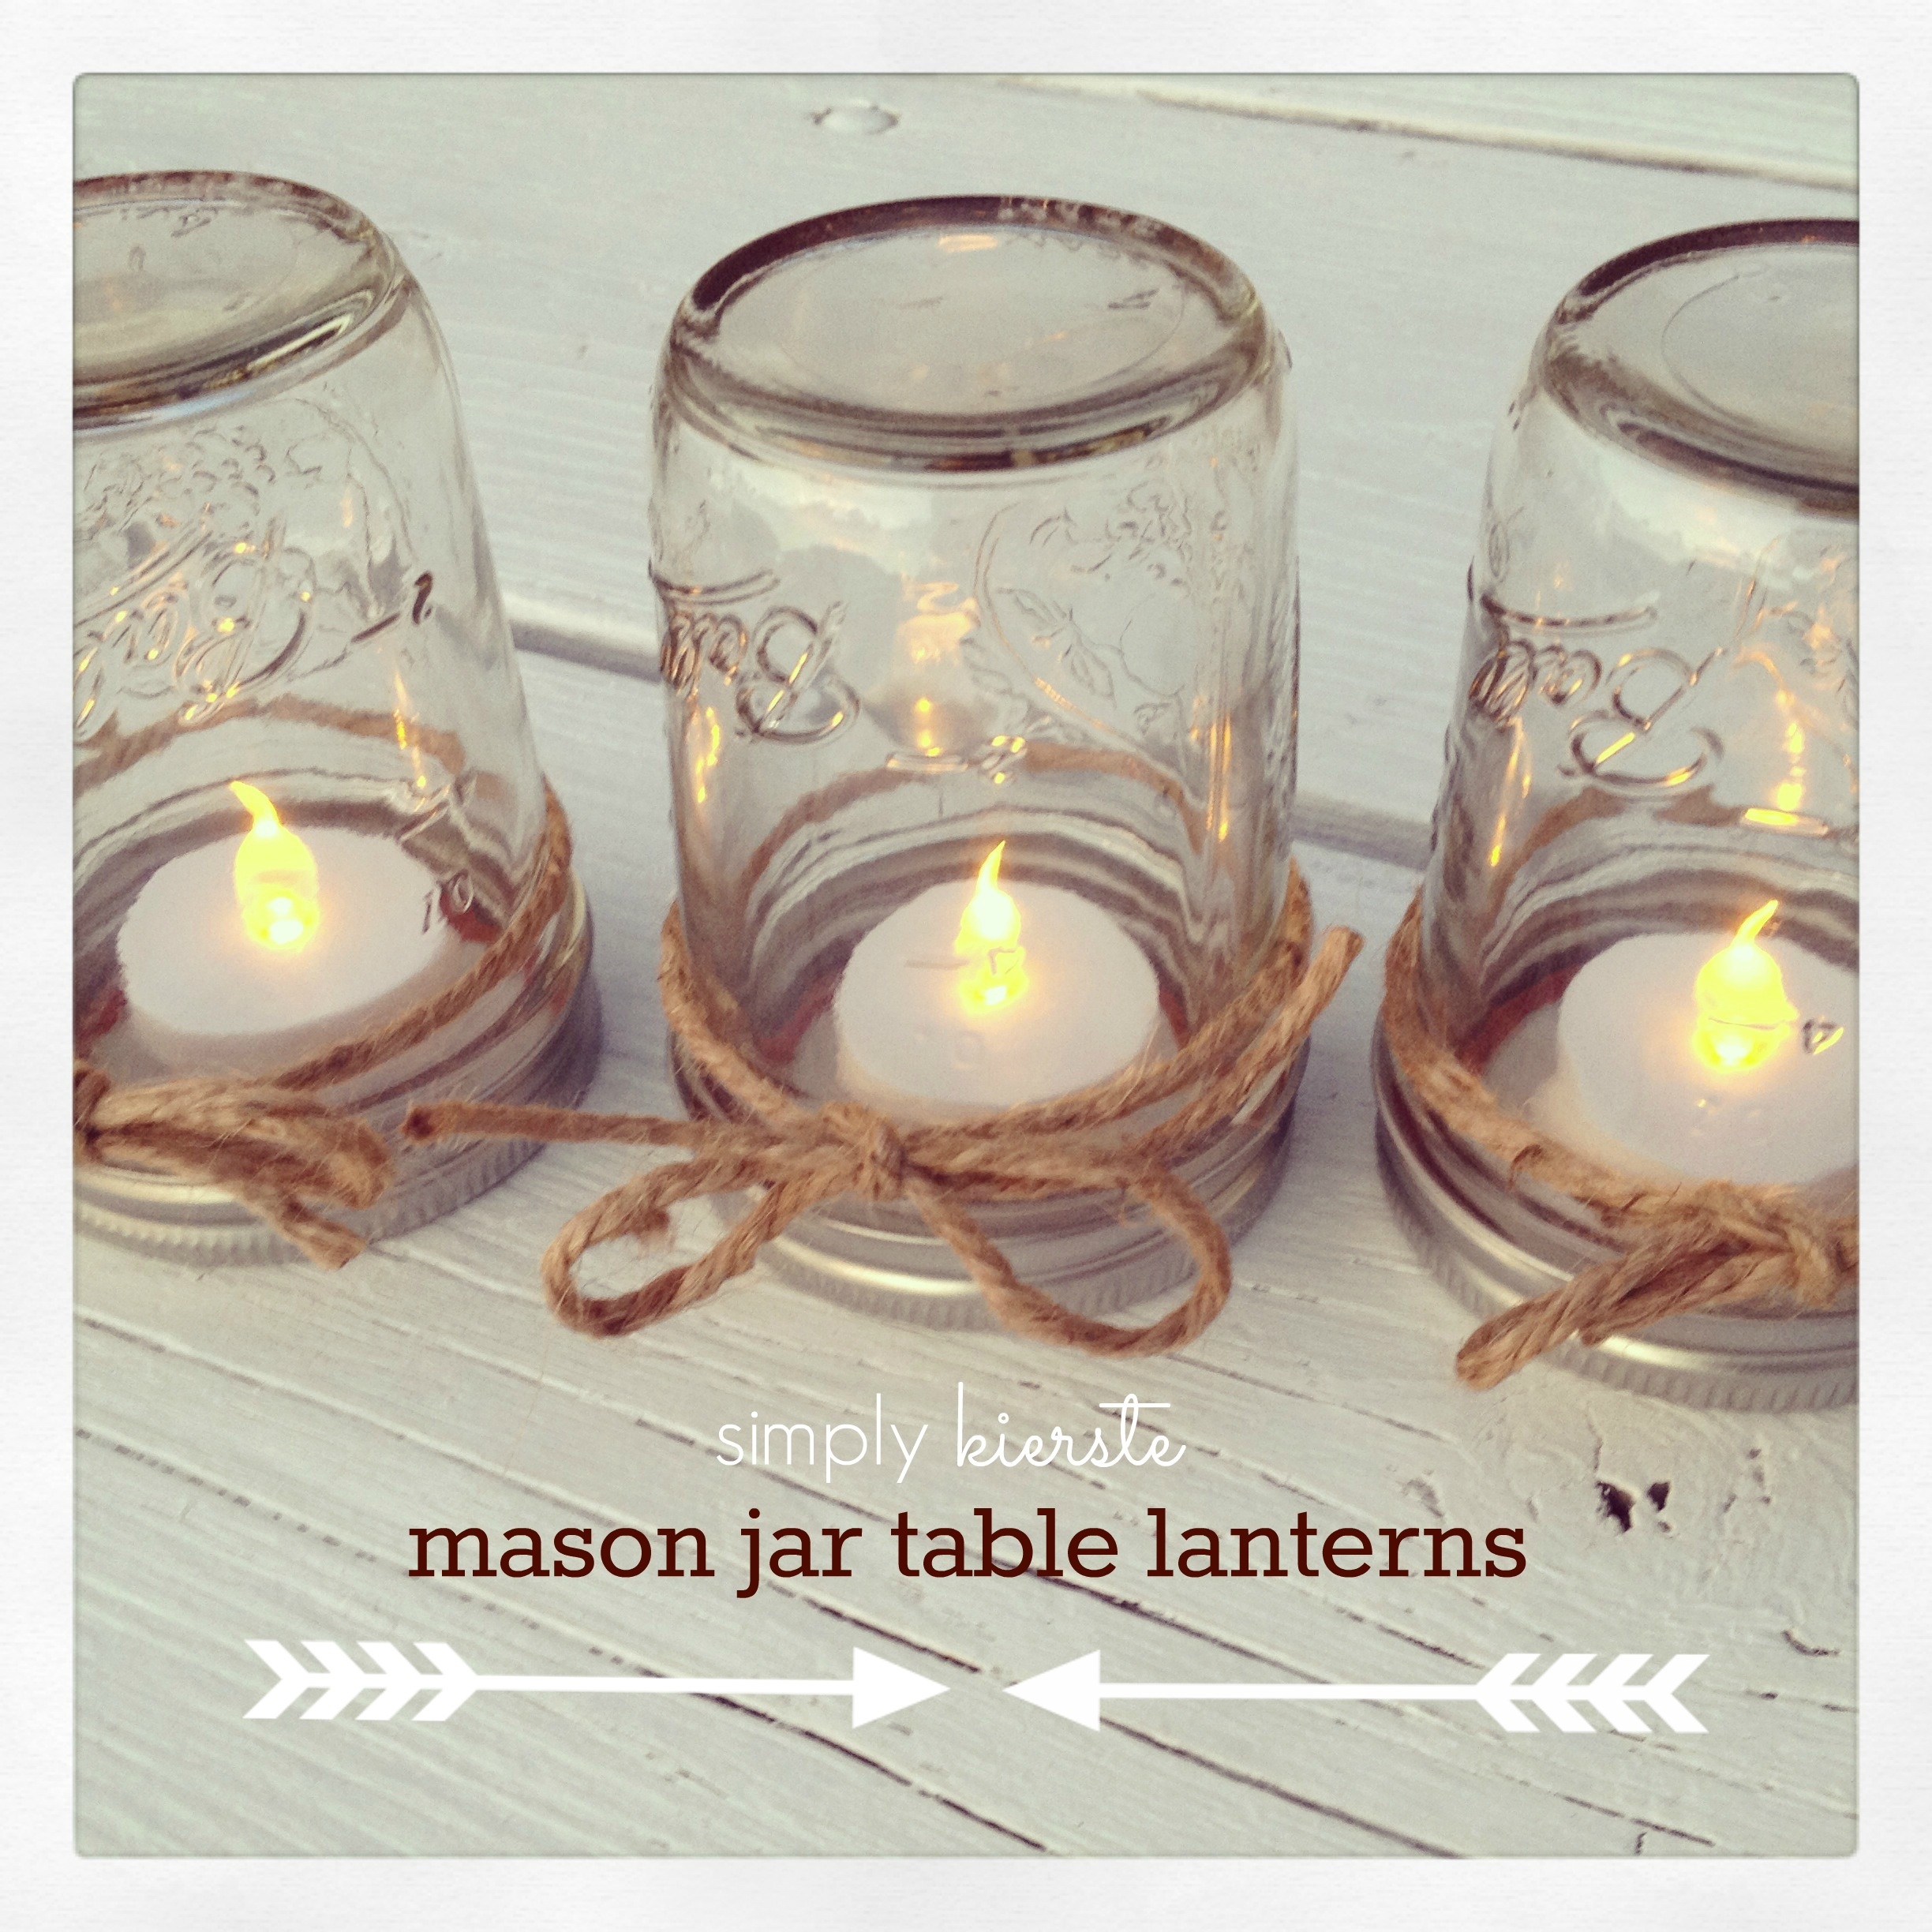 mason jar decorations related keywords suggestions mason jar